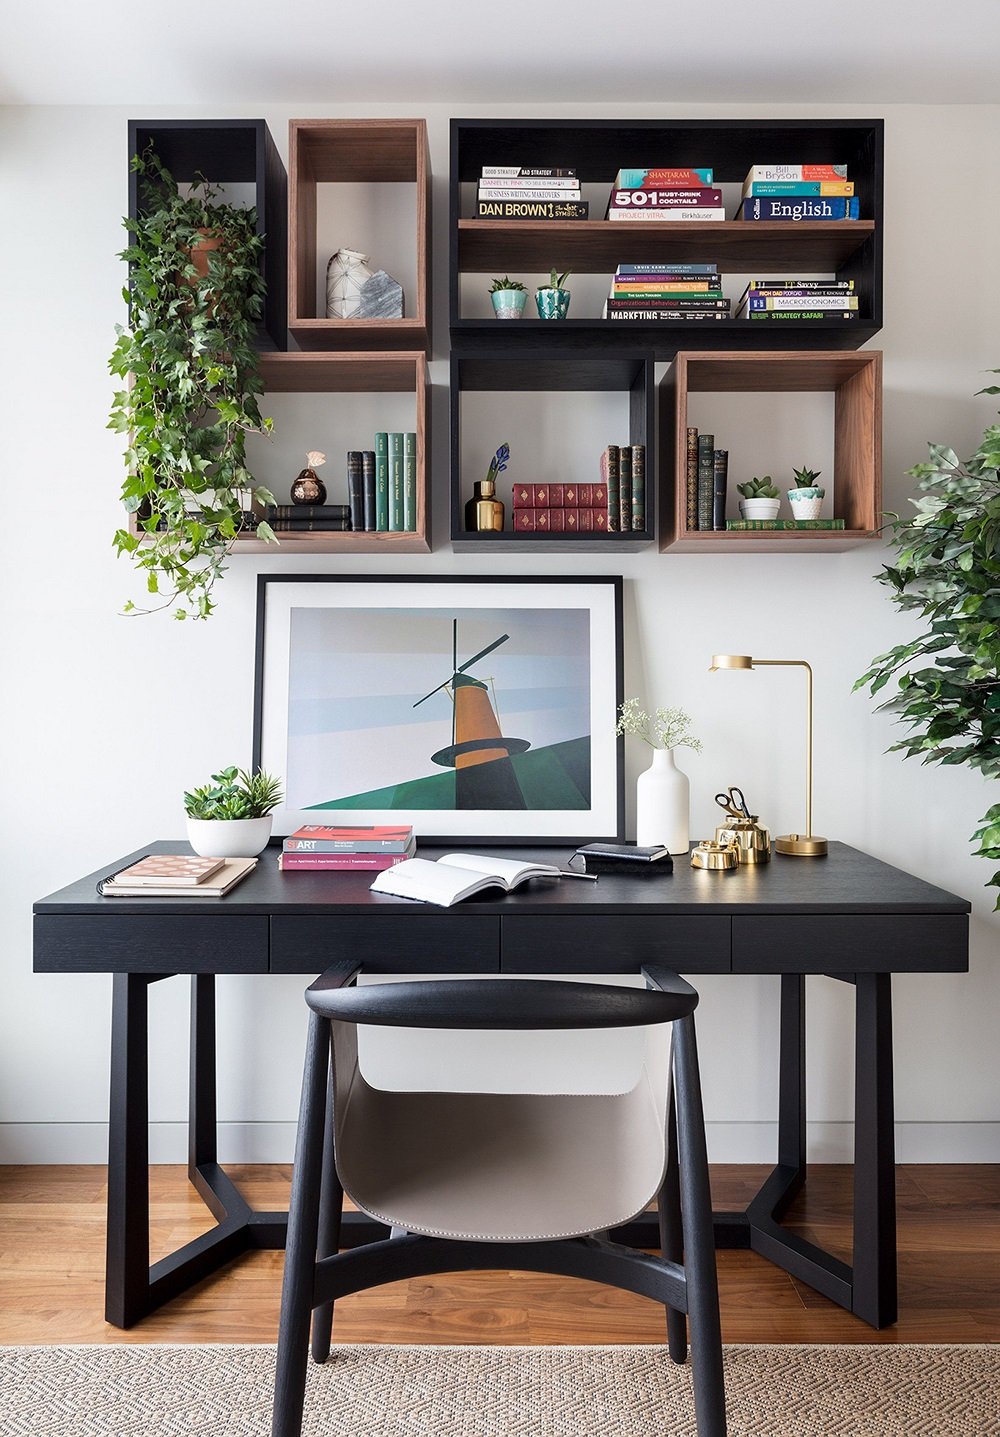 mod10 modular shelving systems and how you can decorate them